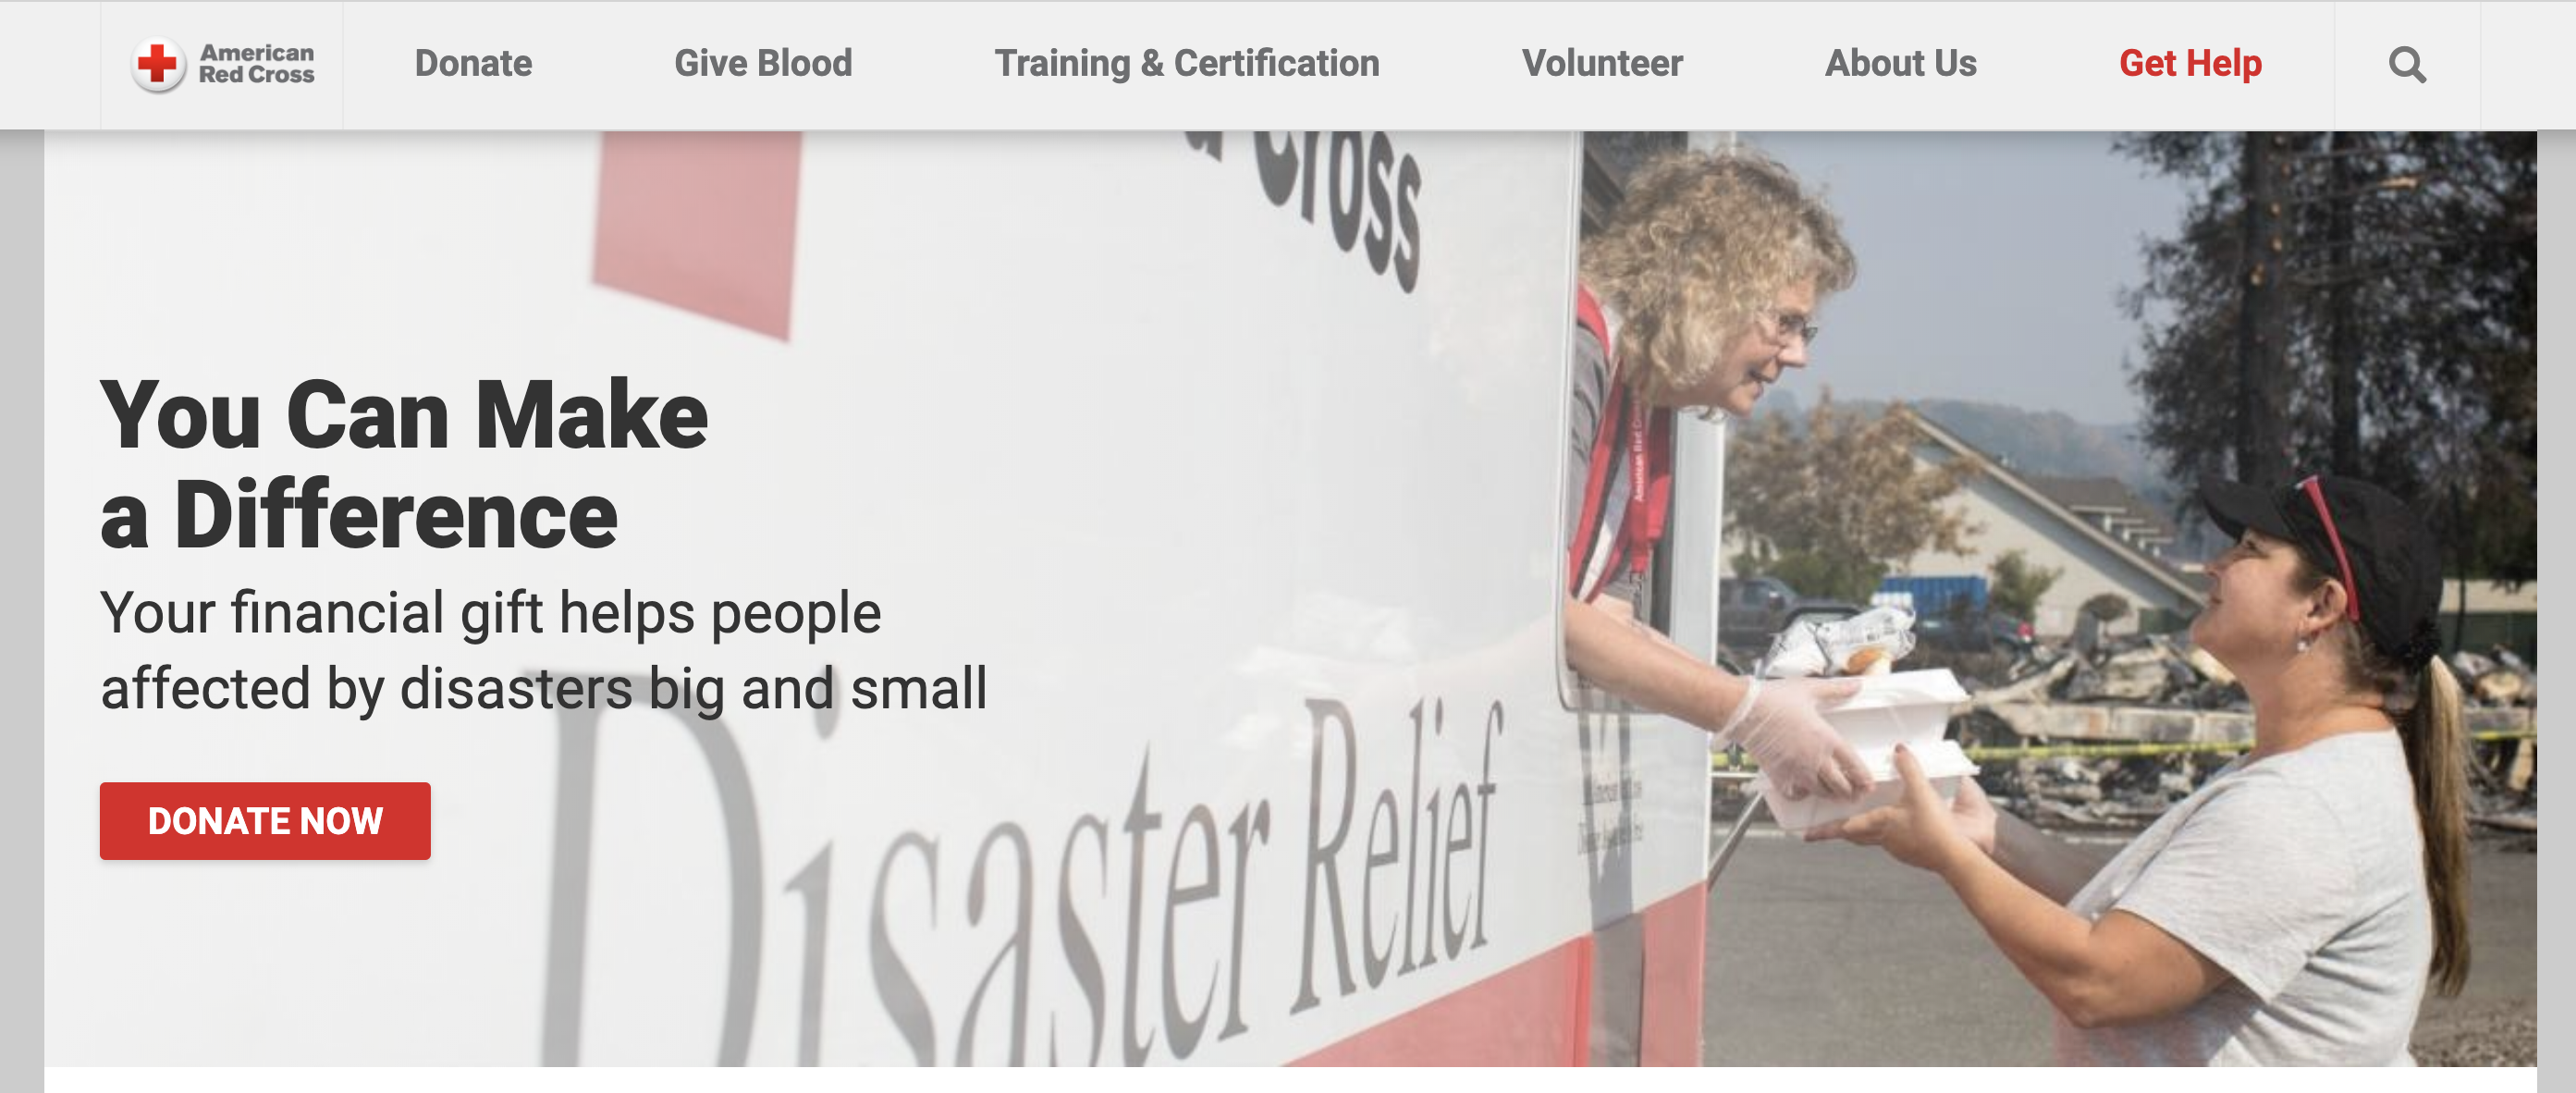 American Red Cross call to action example